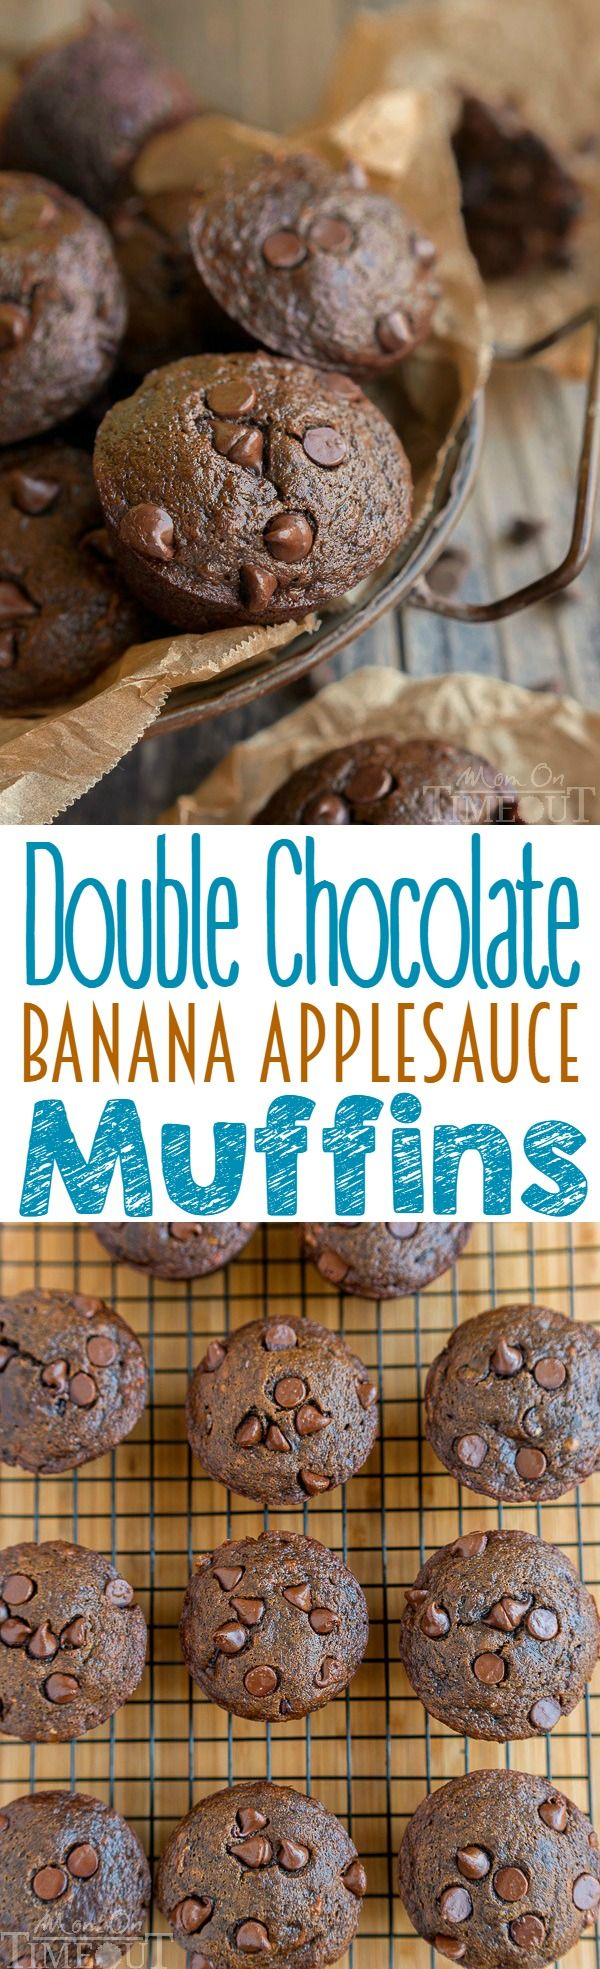 Double Chocolate Banana Applesauce Muffins are perfect for those days when you wake up craving chocolate. Easy, delicious and made without oil, butter, or eggs. The perfect breakfast or brunch recipe! | MomOnTimeout.com | #vegetarian #vegan